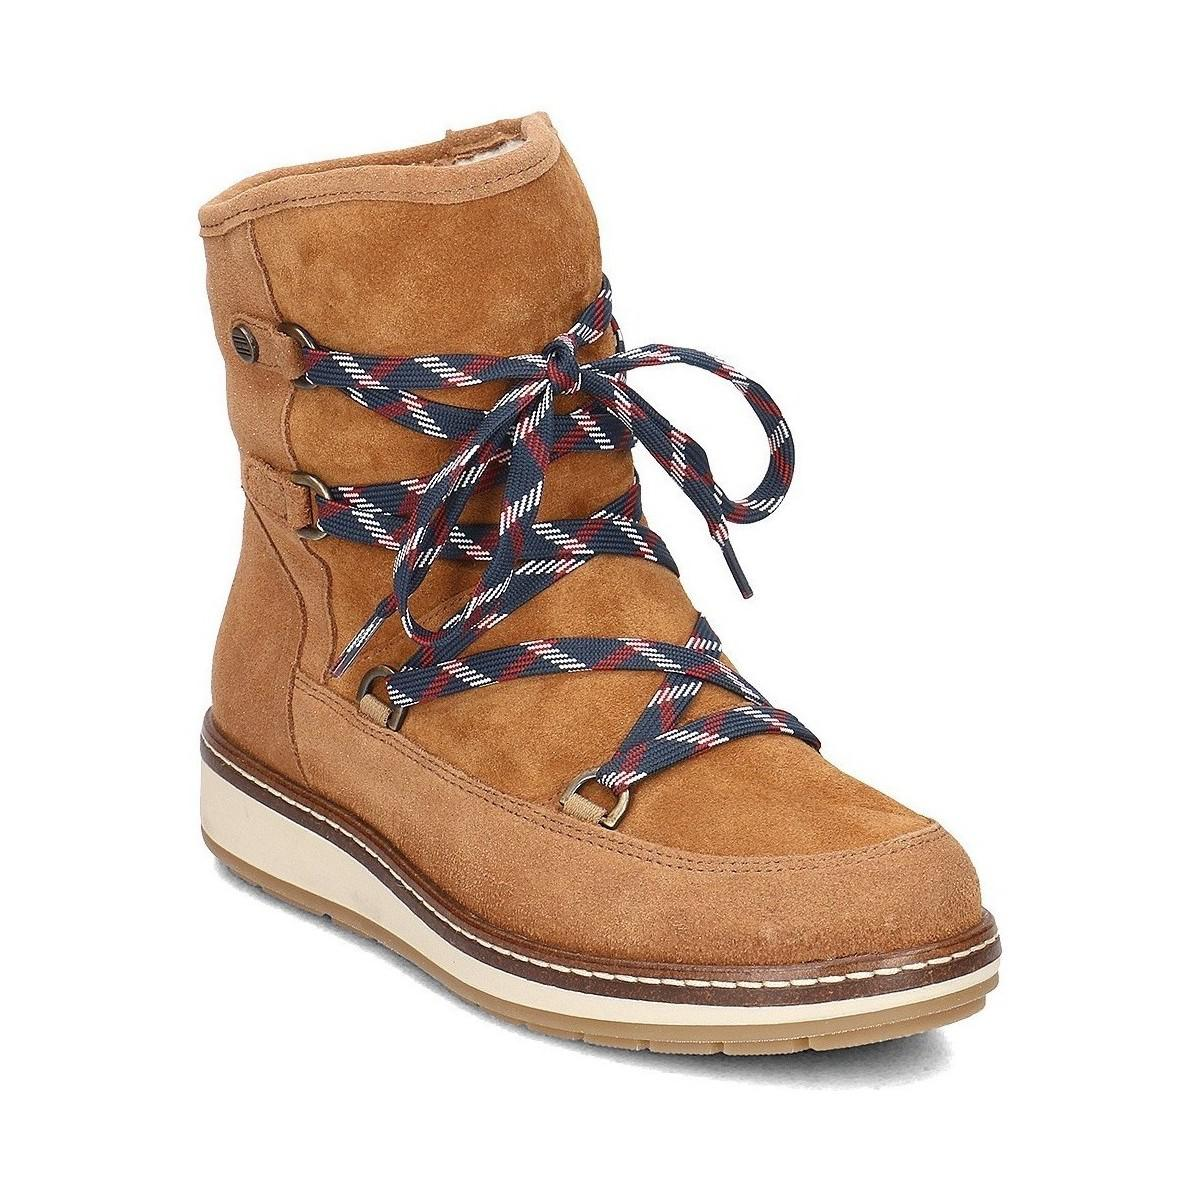 info for f798c 3efa4 tommy-hilfiger-brown-Wooli-14c-Womens-Snow-Boots-In-Brown.jpeg